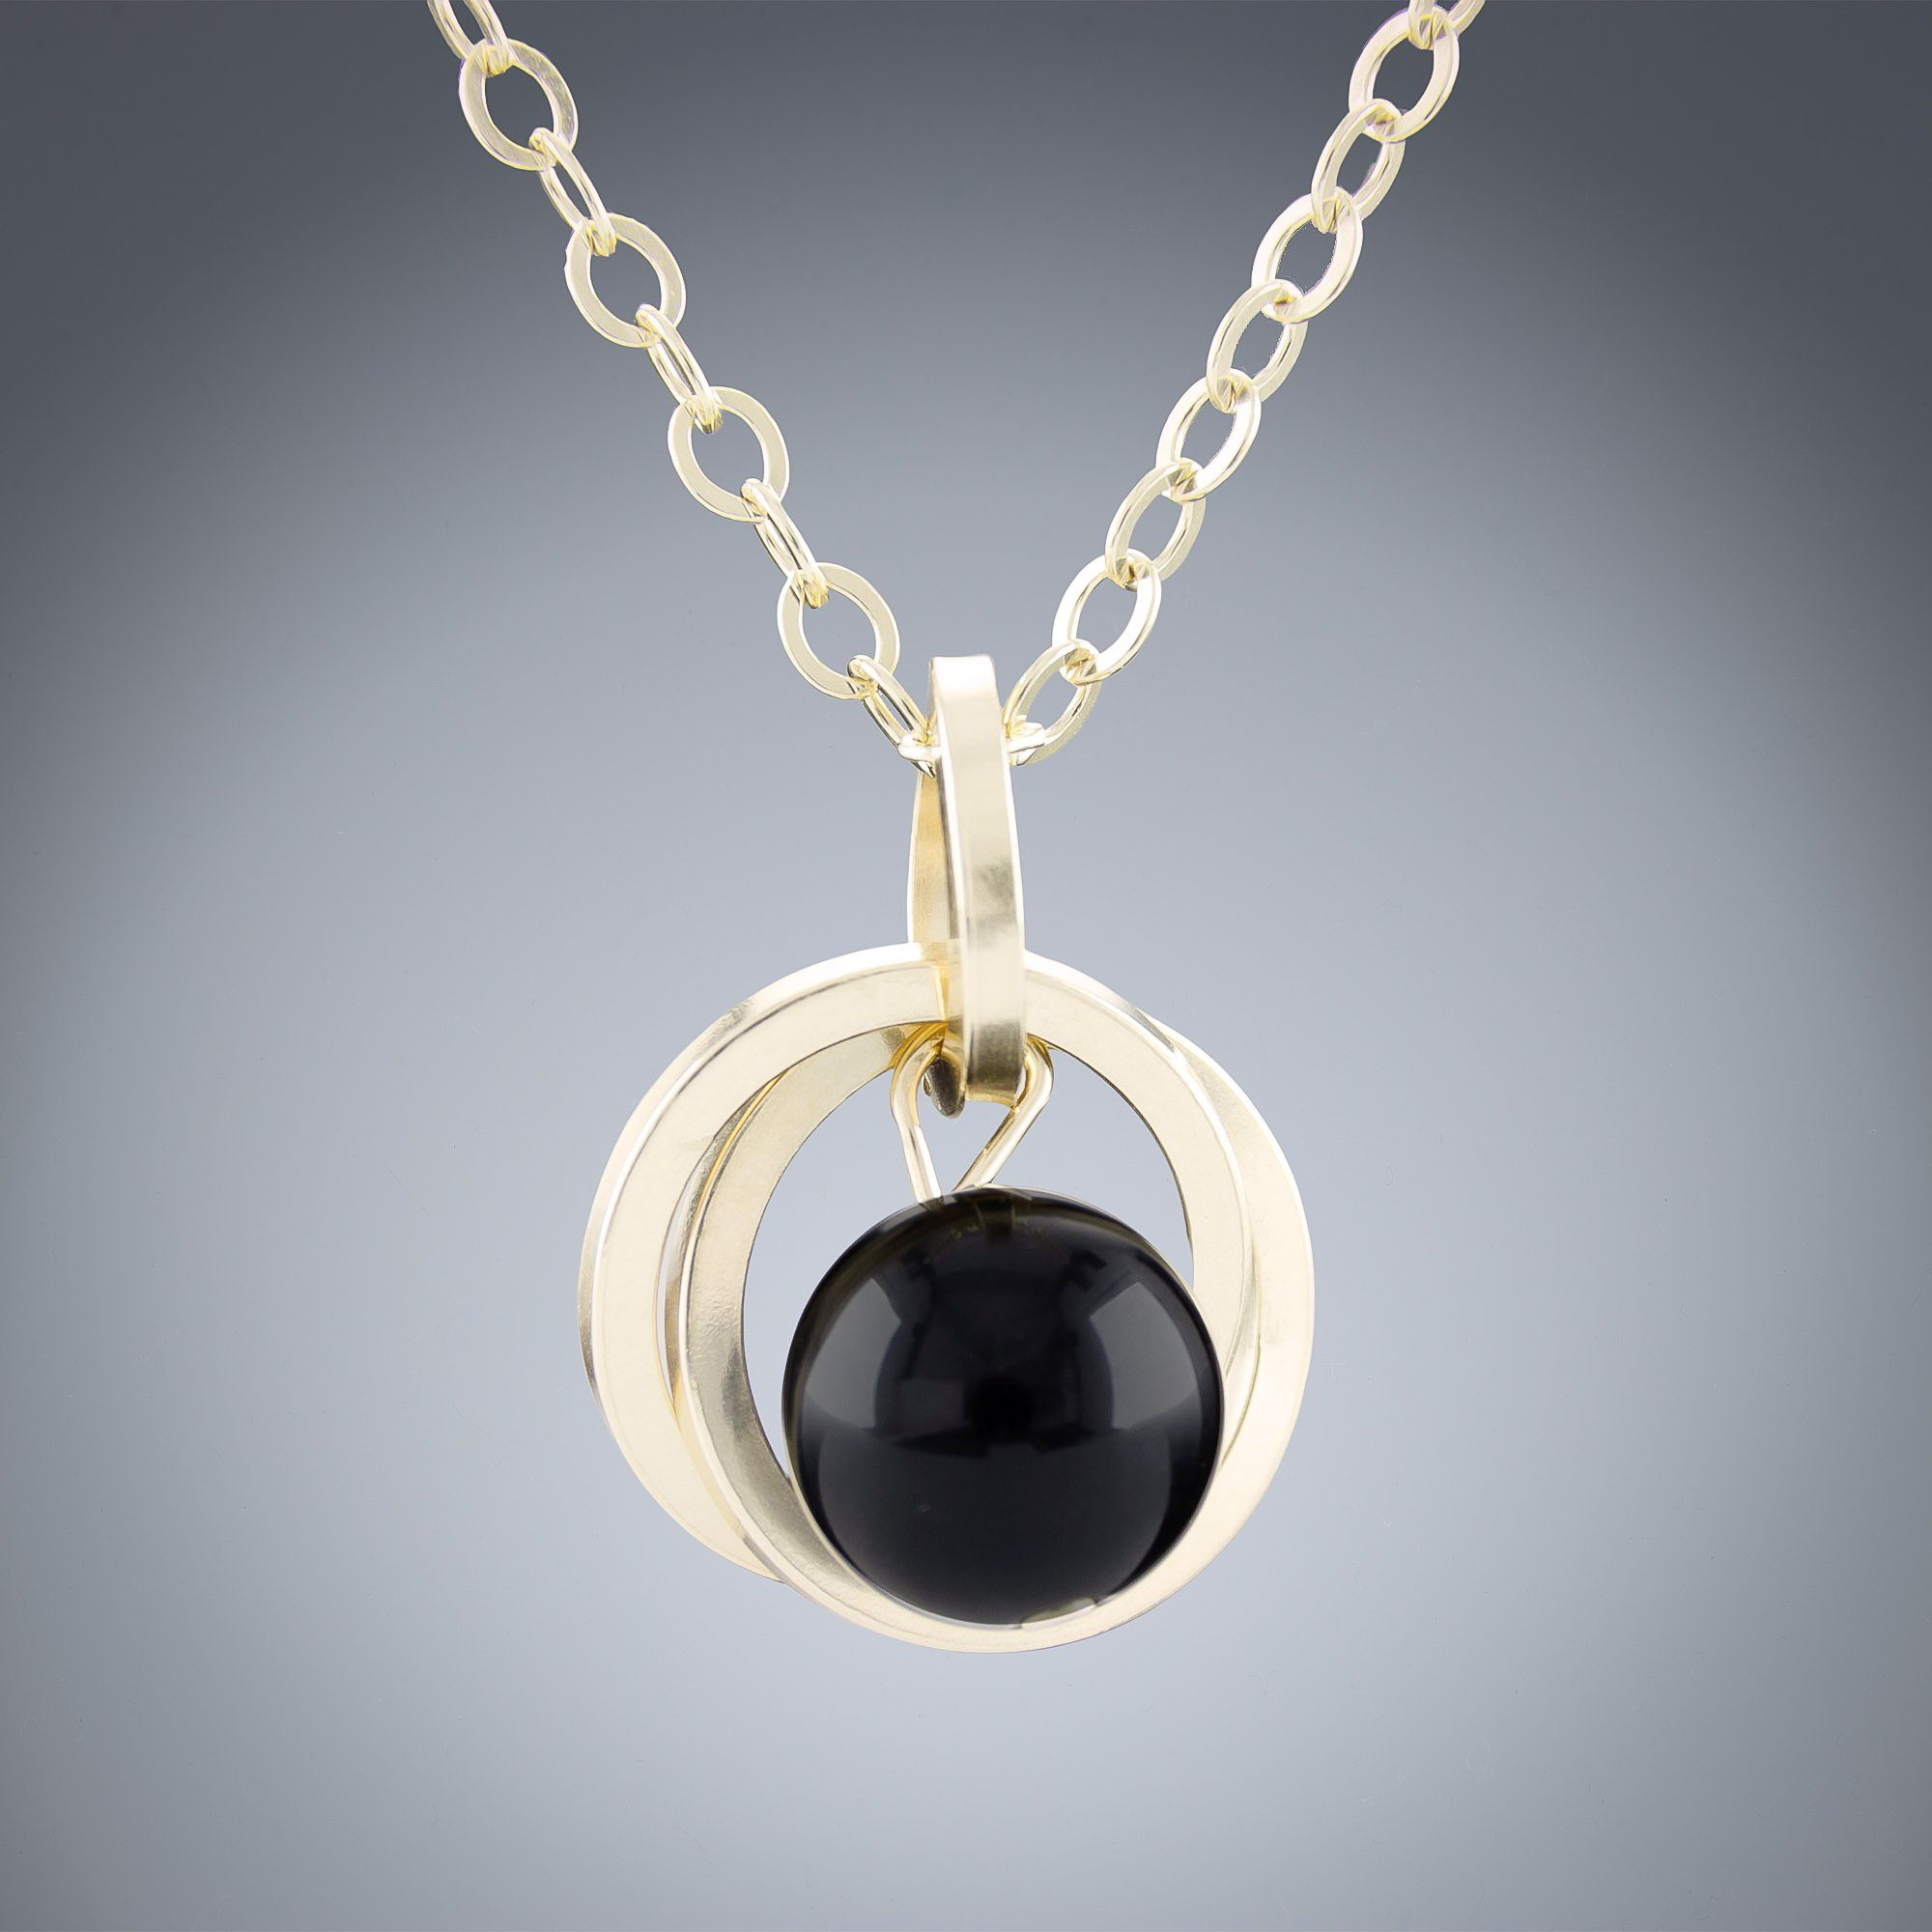 Square Wild Flower Black Onyx Pendant in Gold